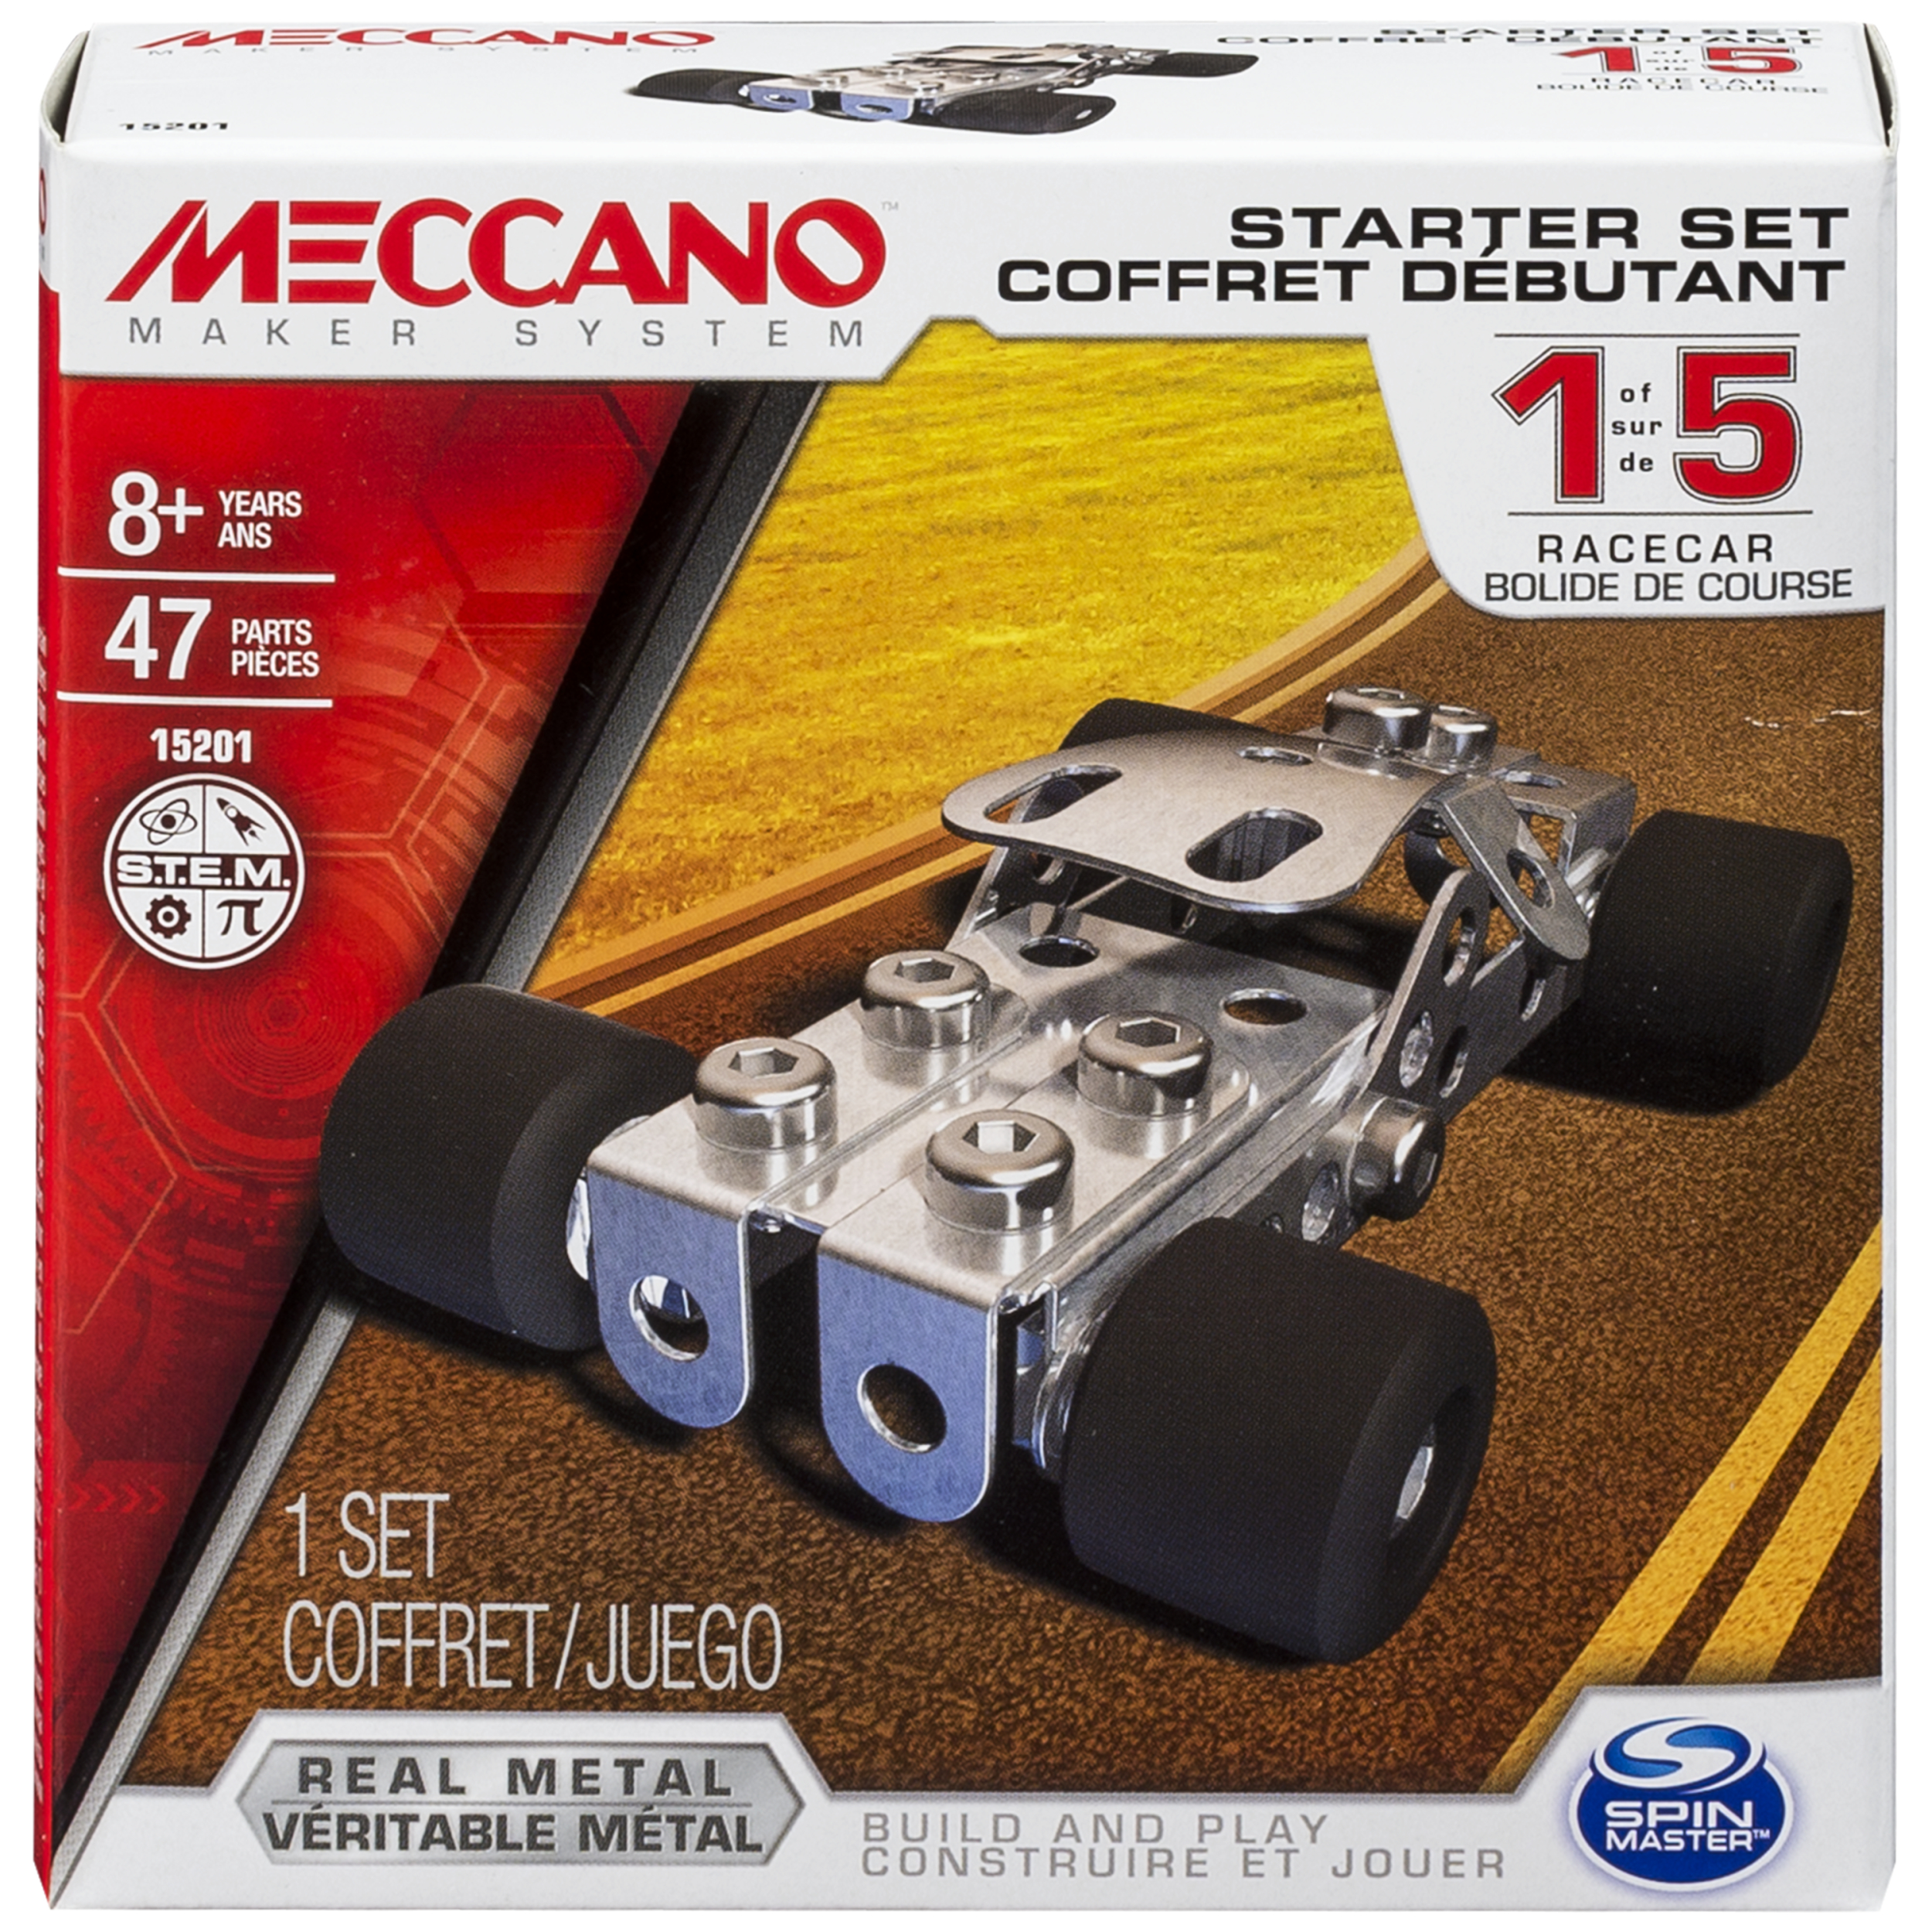 Meccano by Erector, Starter Set, Race Car Model Kit